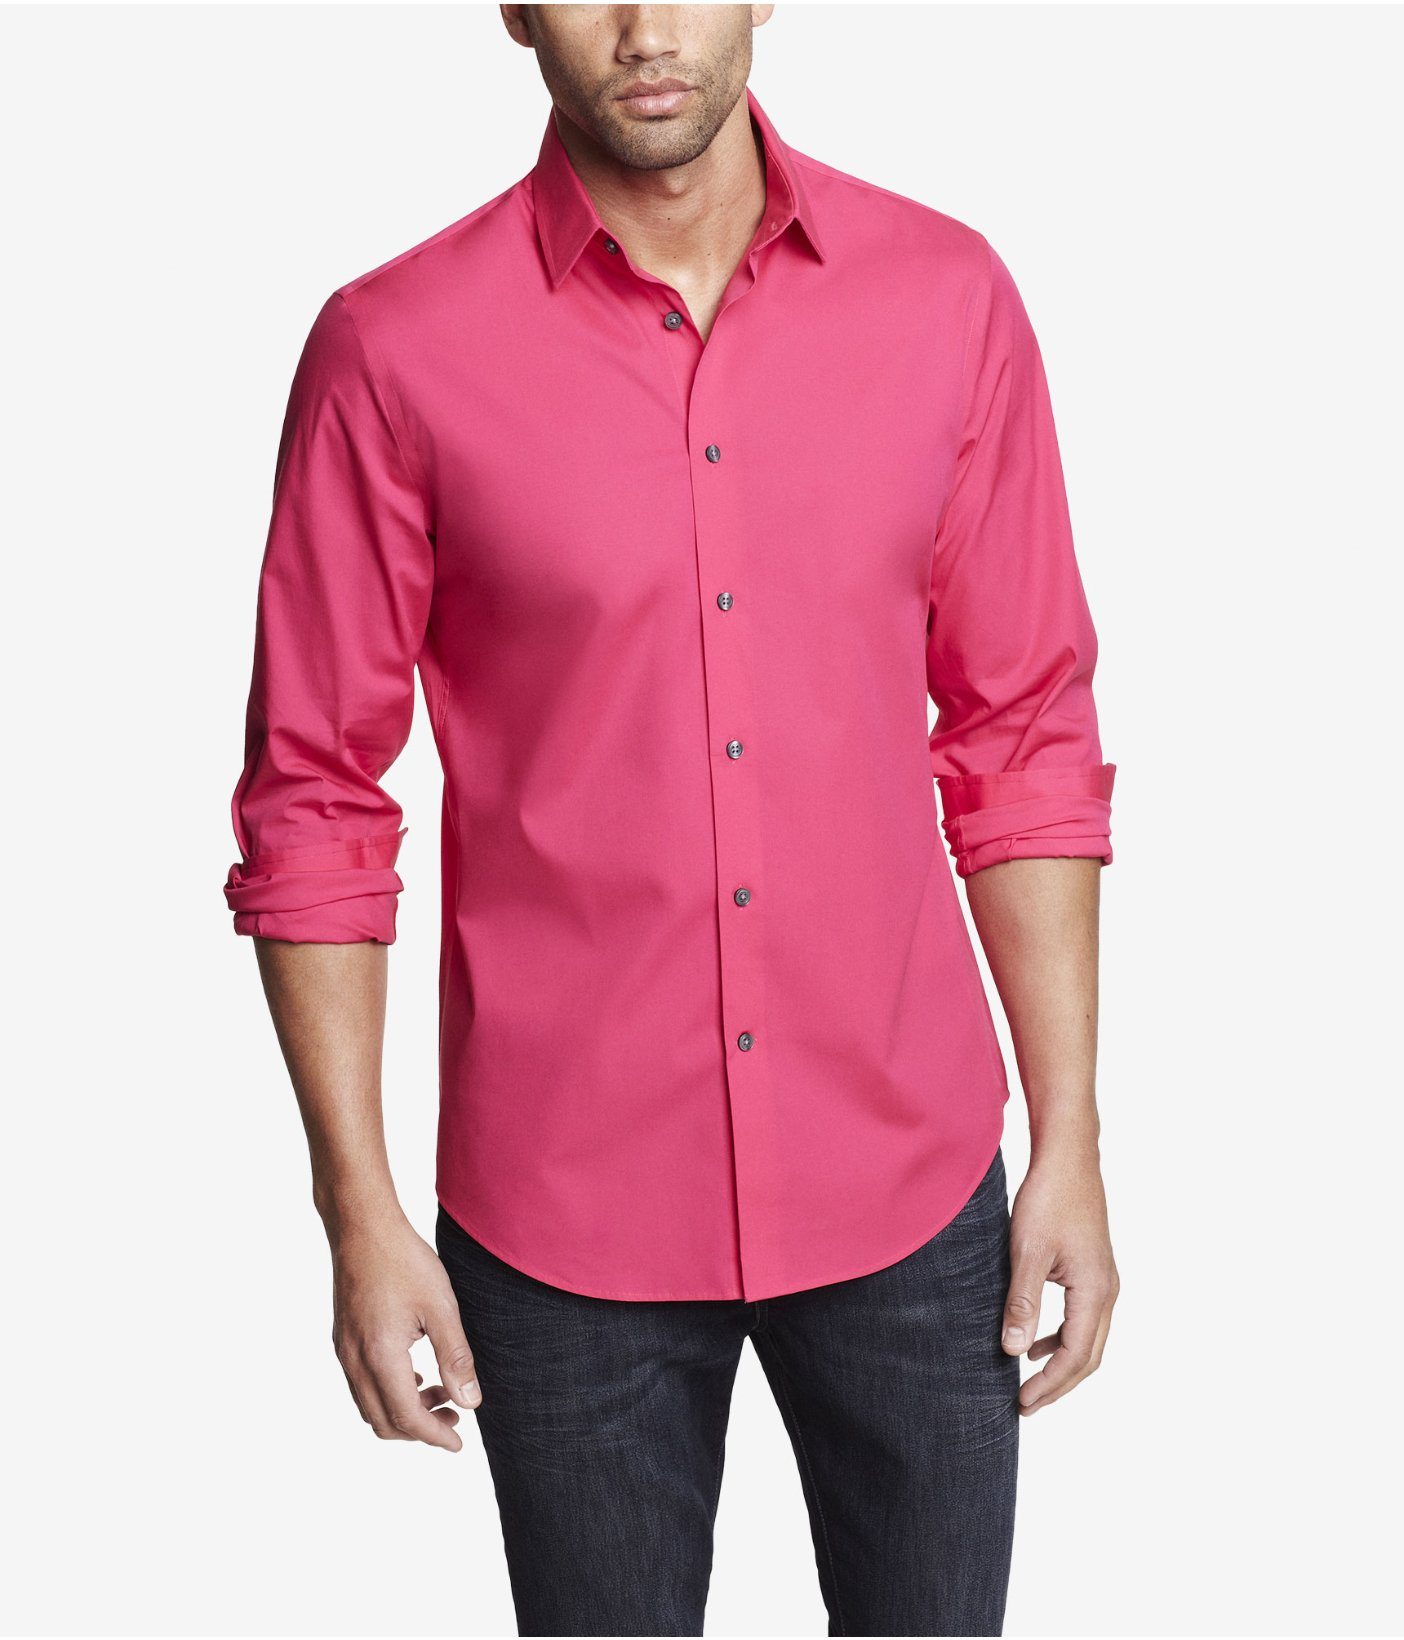 Find great deals on eBay for pink mens shirt. Shop with confidence.